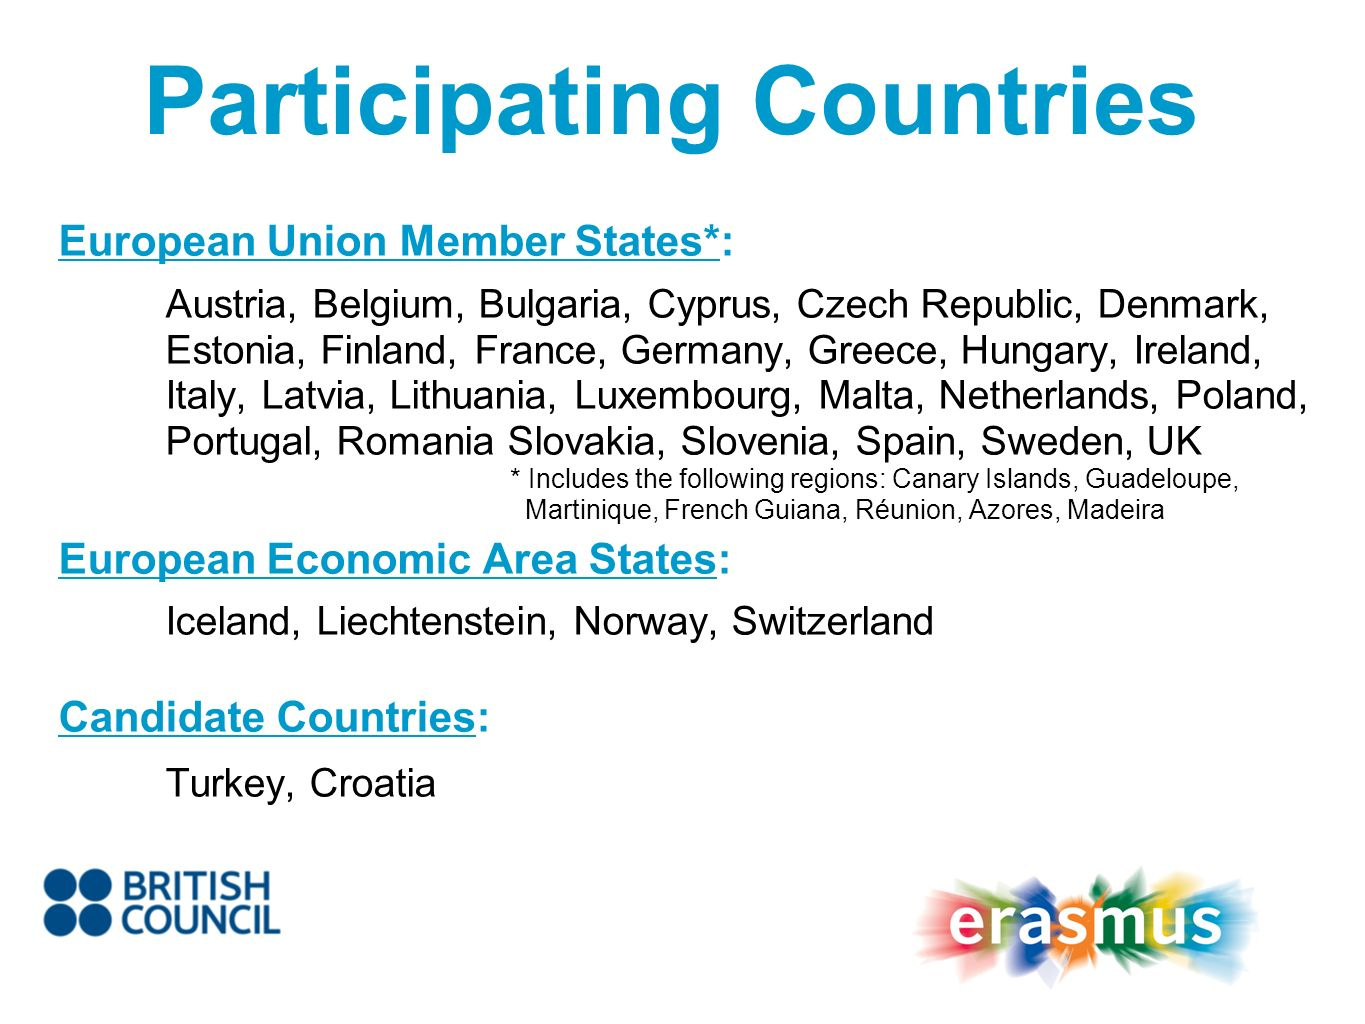 Participating Countries European Union Member States*: Austria, Belgium, Bulgaria, Cyprus, Czech Republic, Denmark, Estonia, Finland, France, Germany, Greece, Hungary, Ireland, Italy, Latvia, Lithuania, Luxembourg, Malta, Netherlands, Poland, Portugal, Romania Slovakia, Slovenia, Spain, Sweden, UK * Includes the following regions: Canary Islands, Guadeloupe, Martinique, French Guiana, Réunion, Azores, Madeira European Economic Area States: Iceland, Liechtenstein, Norway, Switzerland Candidate Countries: Turkey, Croatia